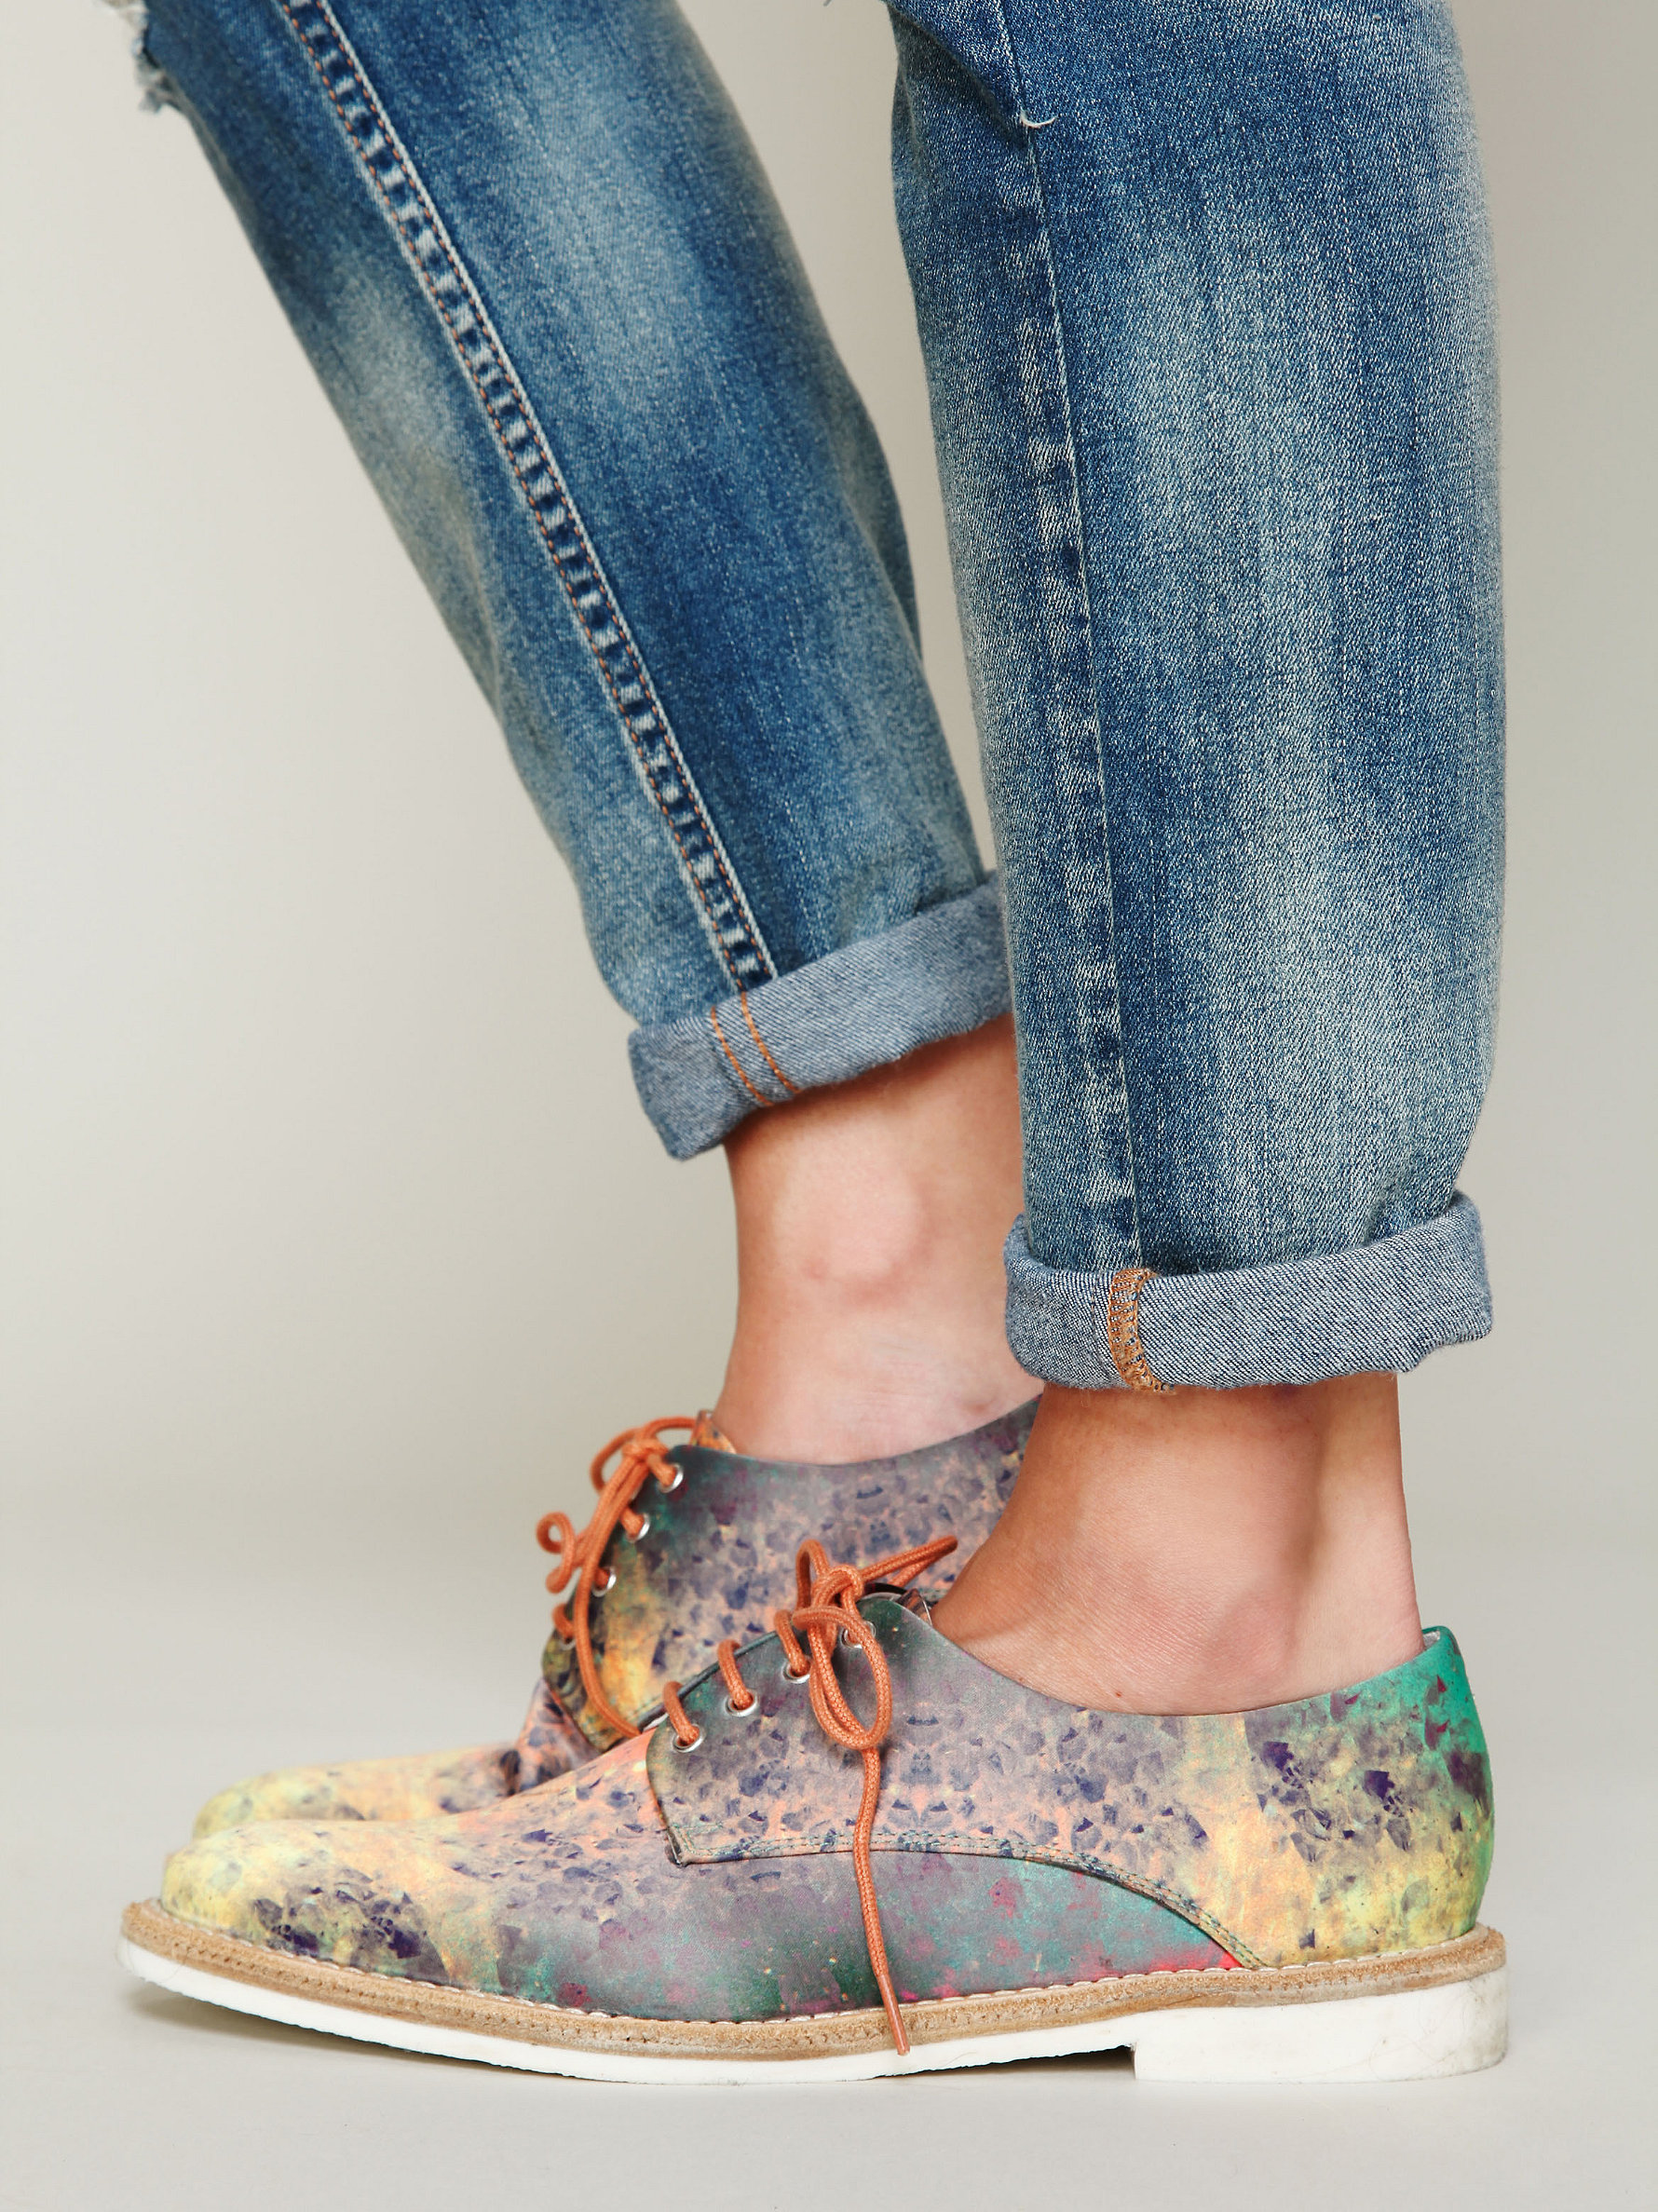 http://images4.freepeople.com/is/image/FreePeople/26773382_080_a?$zoom-superxl$